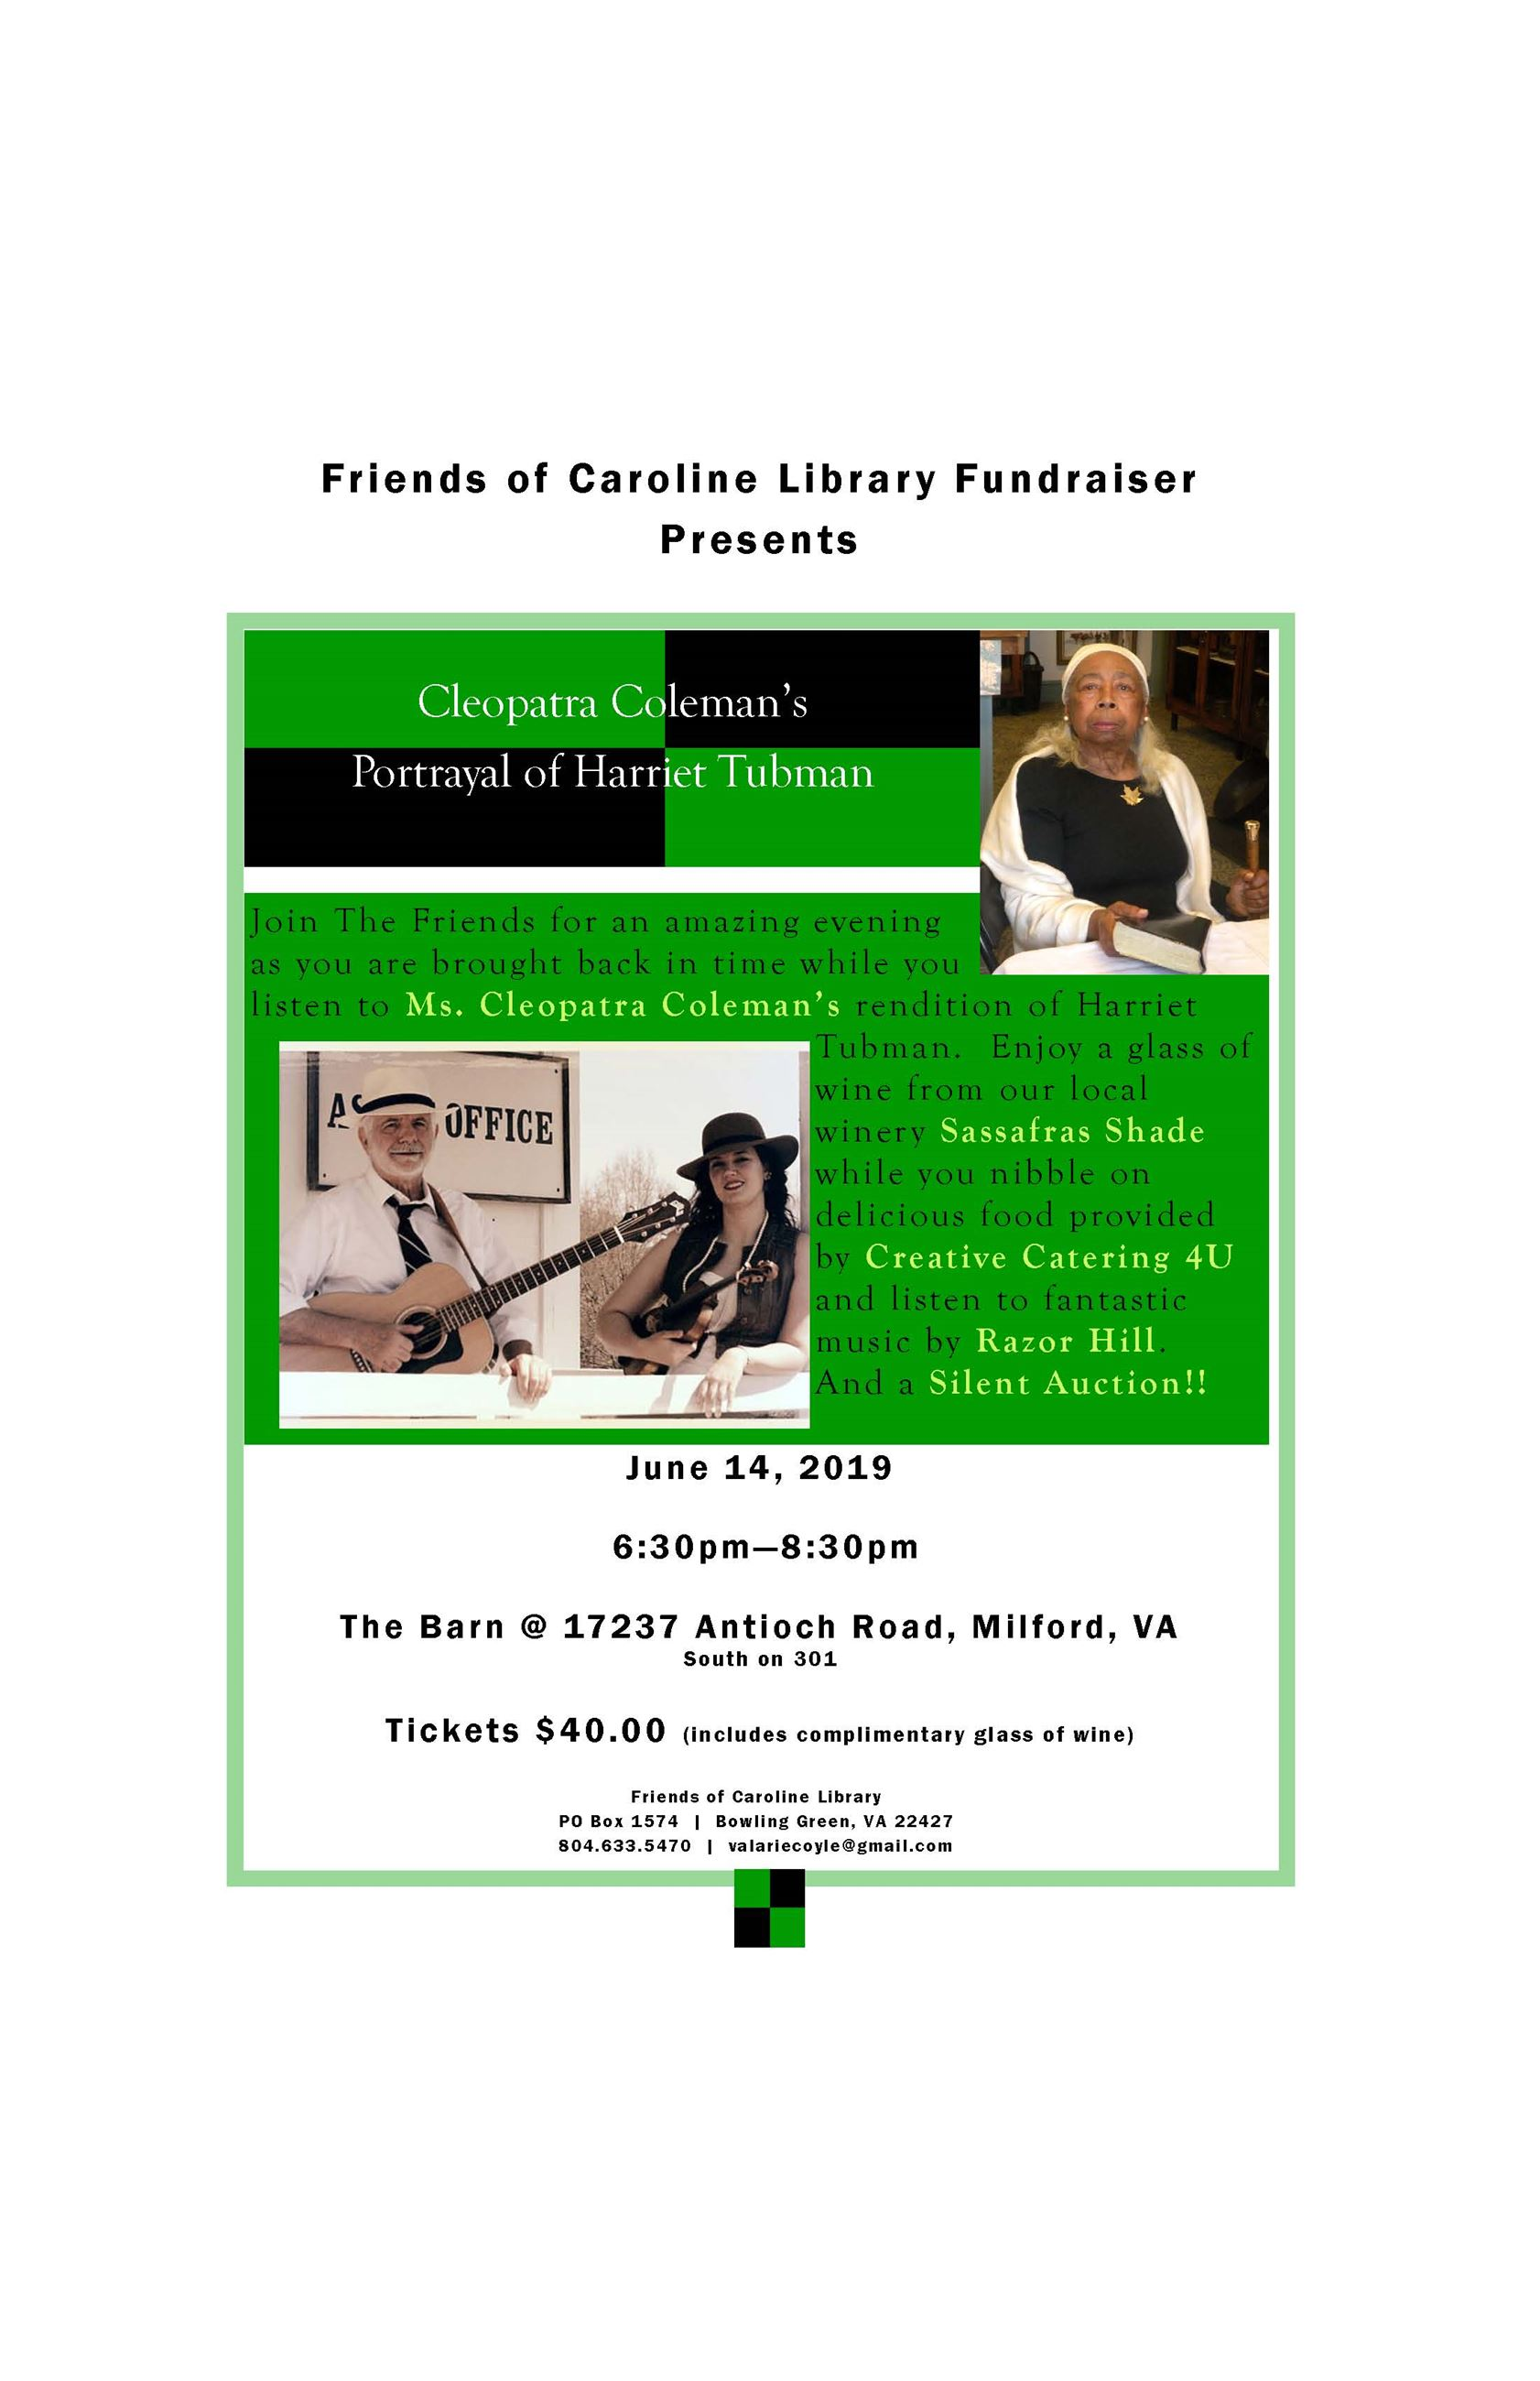 Friends of Caroline Library Cleopatra Coleman Portrayal of Harriet Tubman